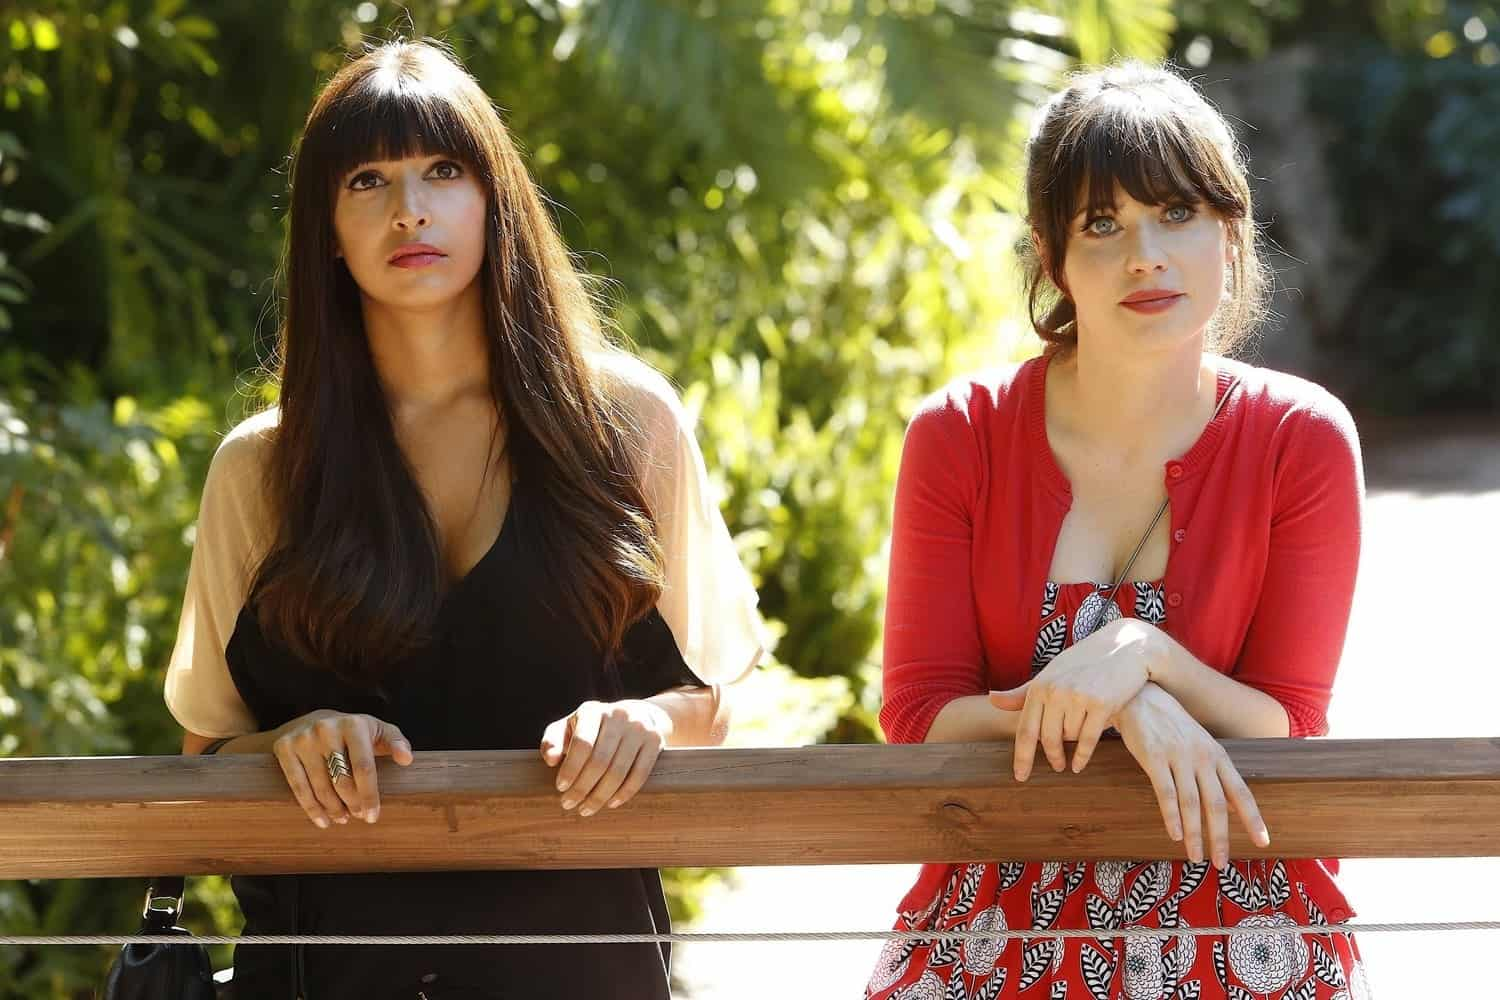 Cece and Jess from New Girl